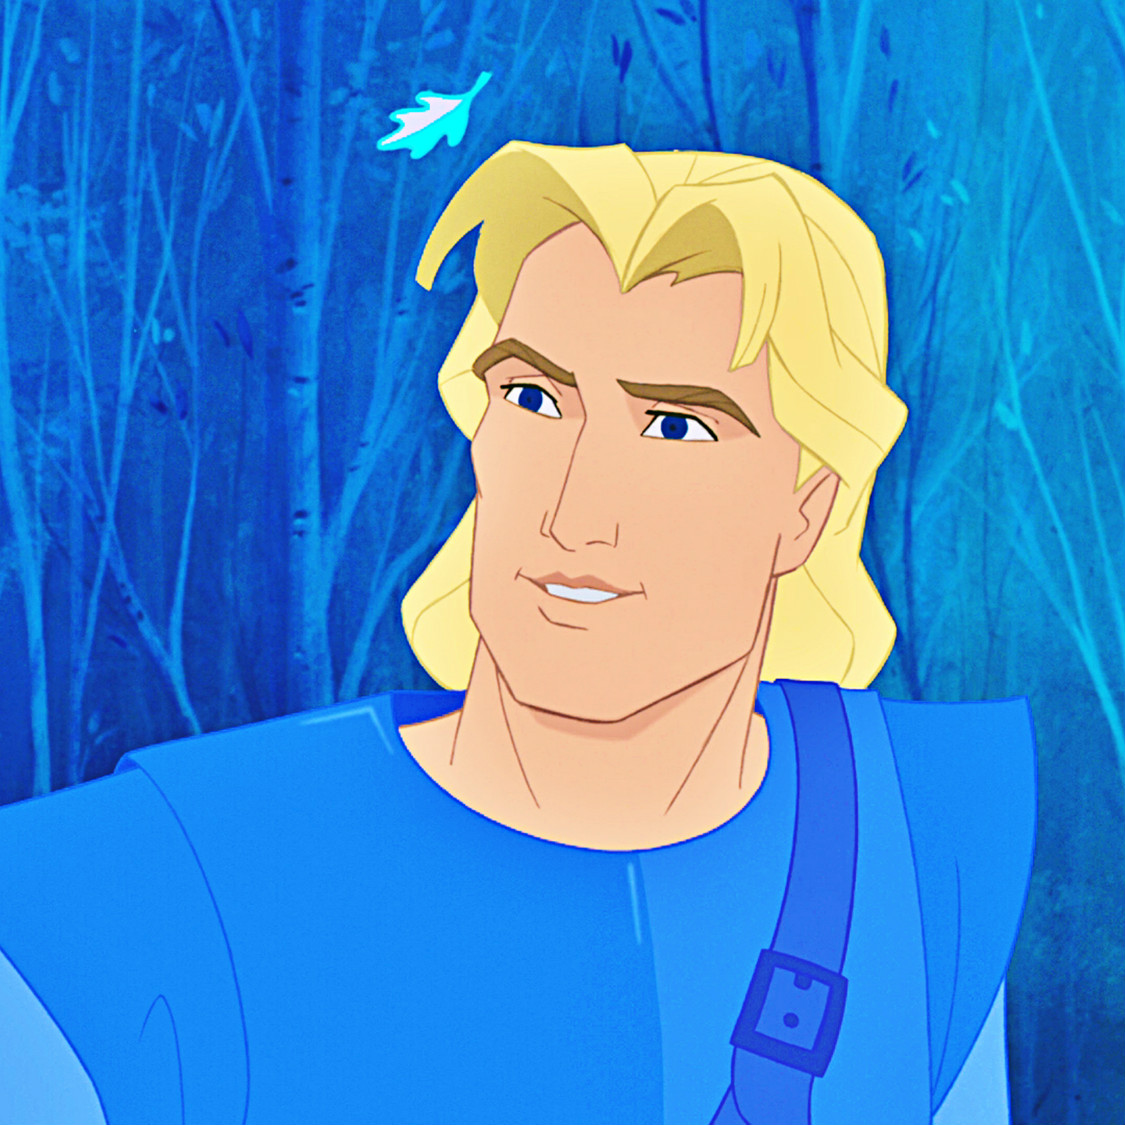 John Smith from Pocahontus